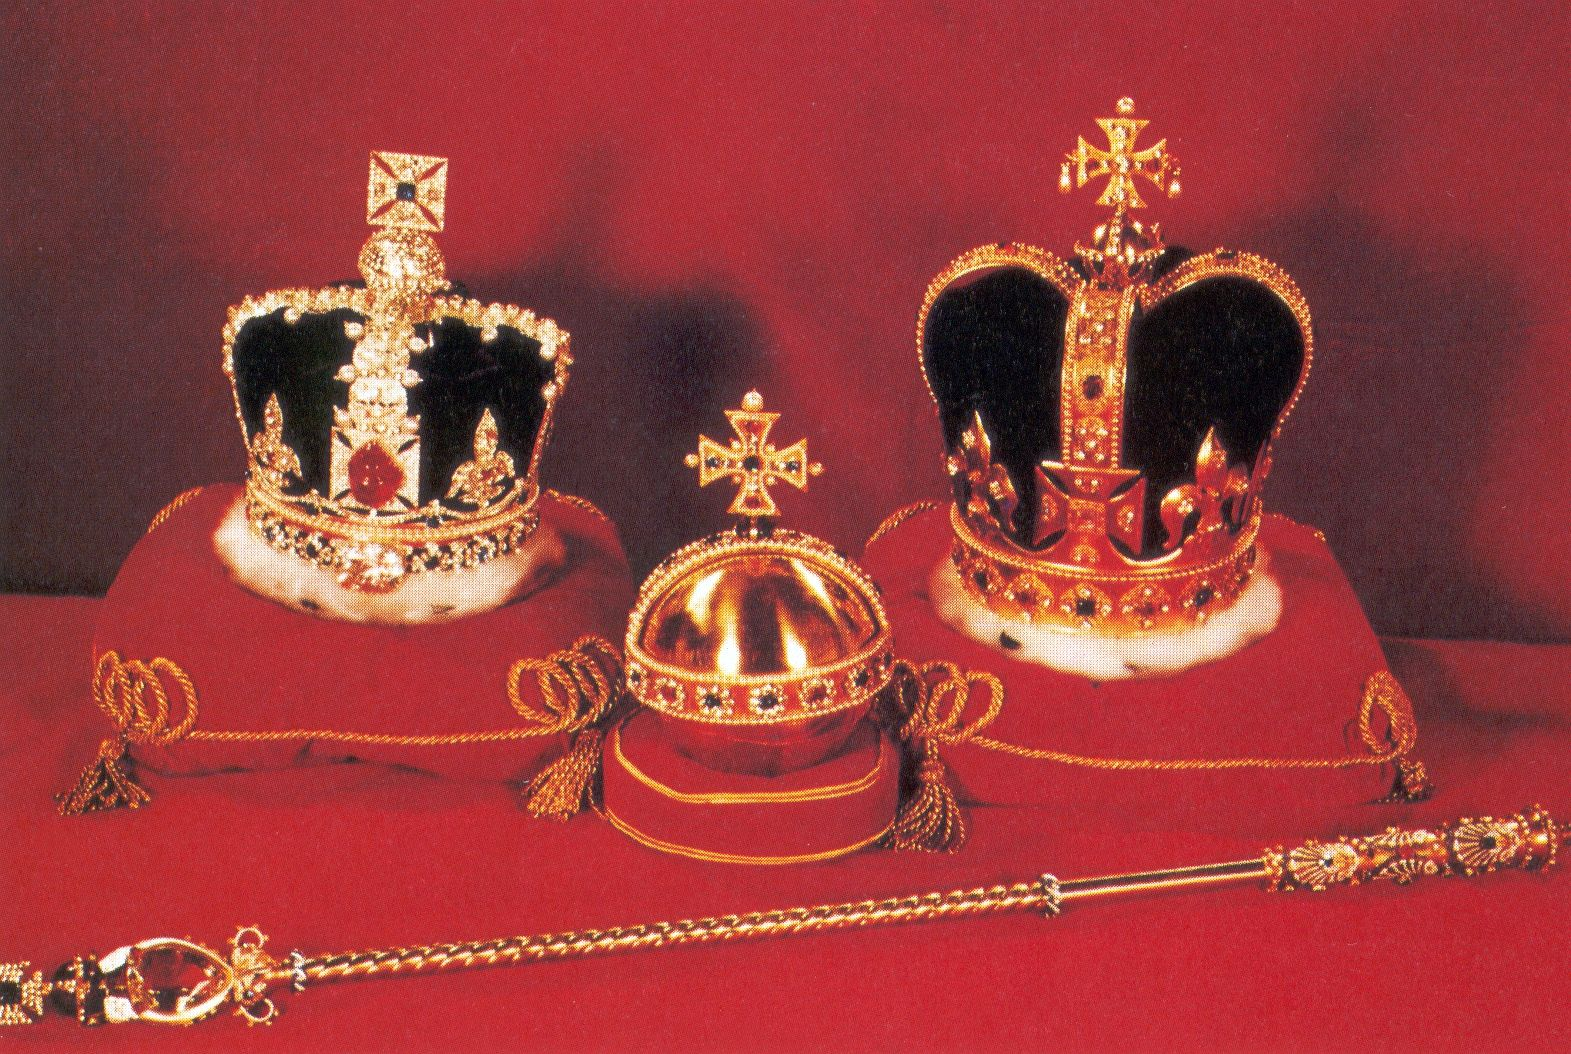 The crown jewels of England and the royal orb and scepter. Yes ...